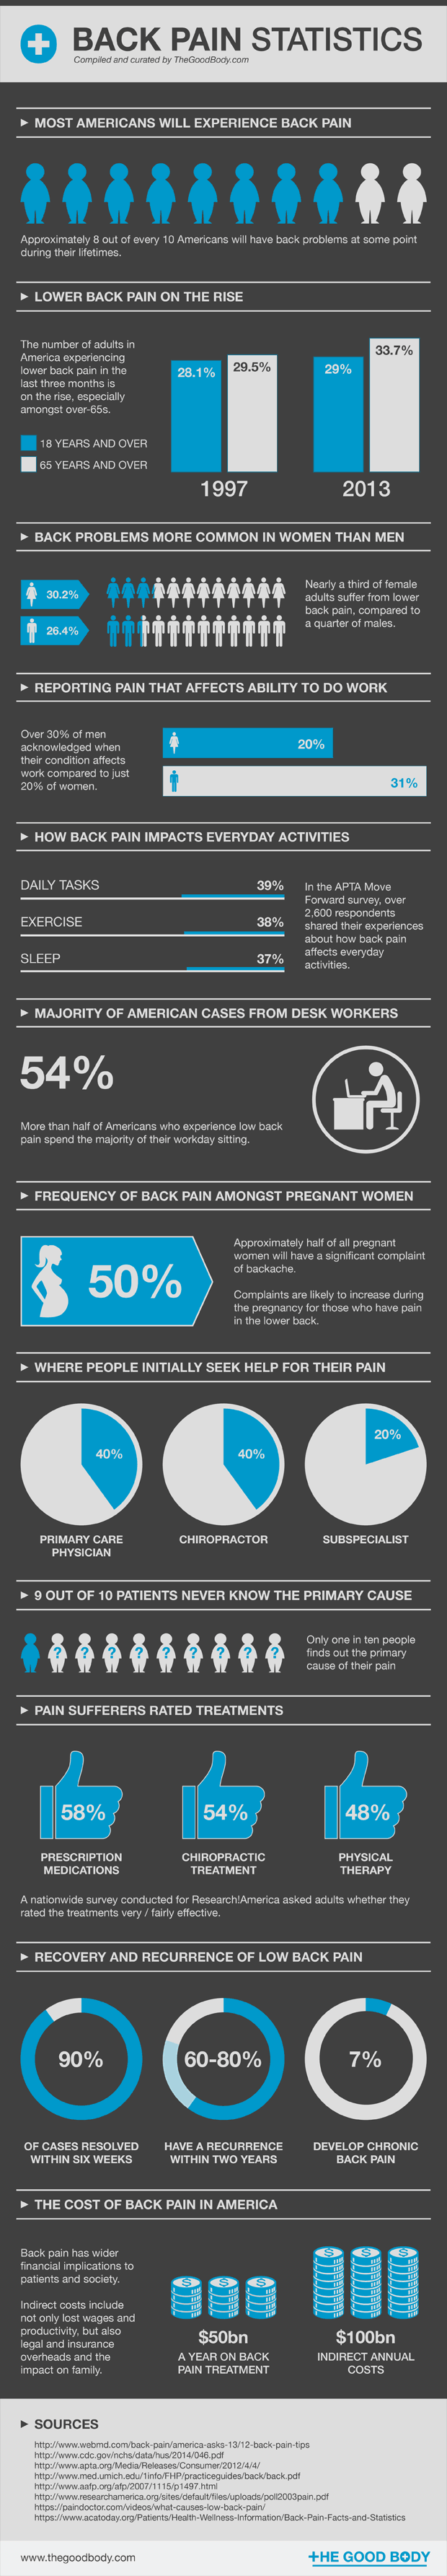 Back Pain Statistics – infographic